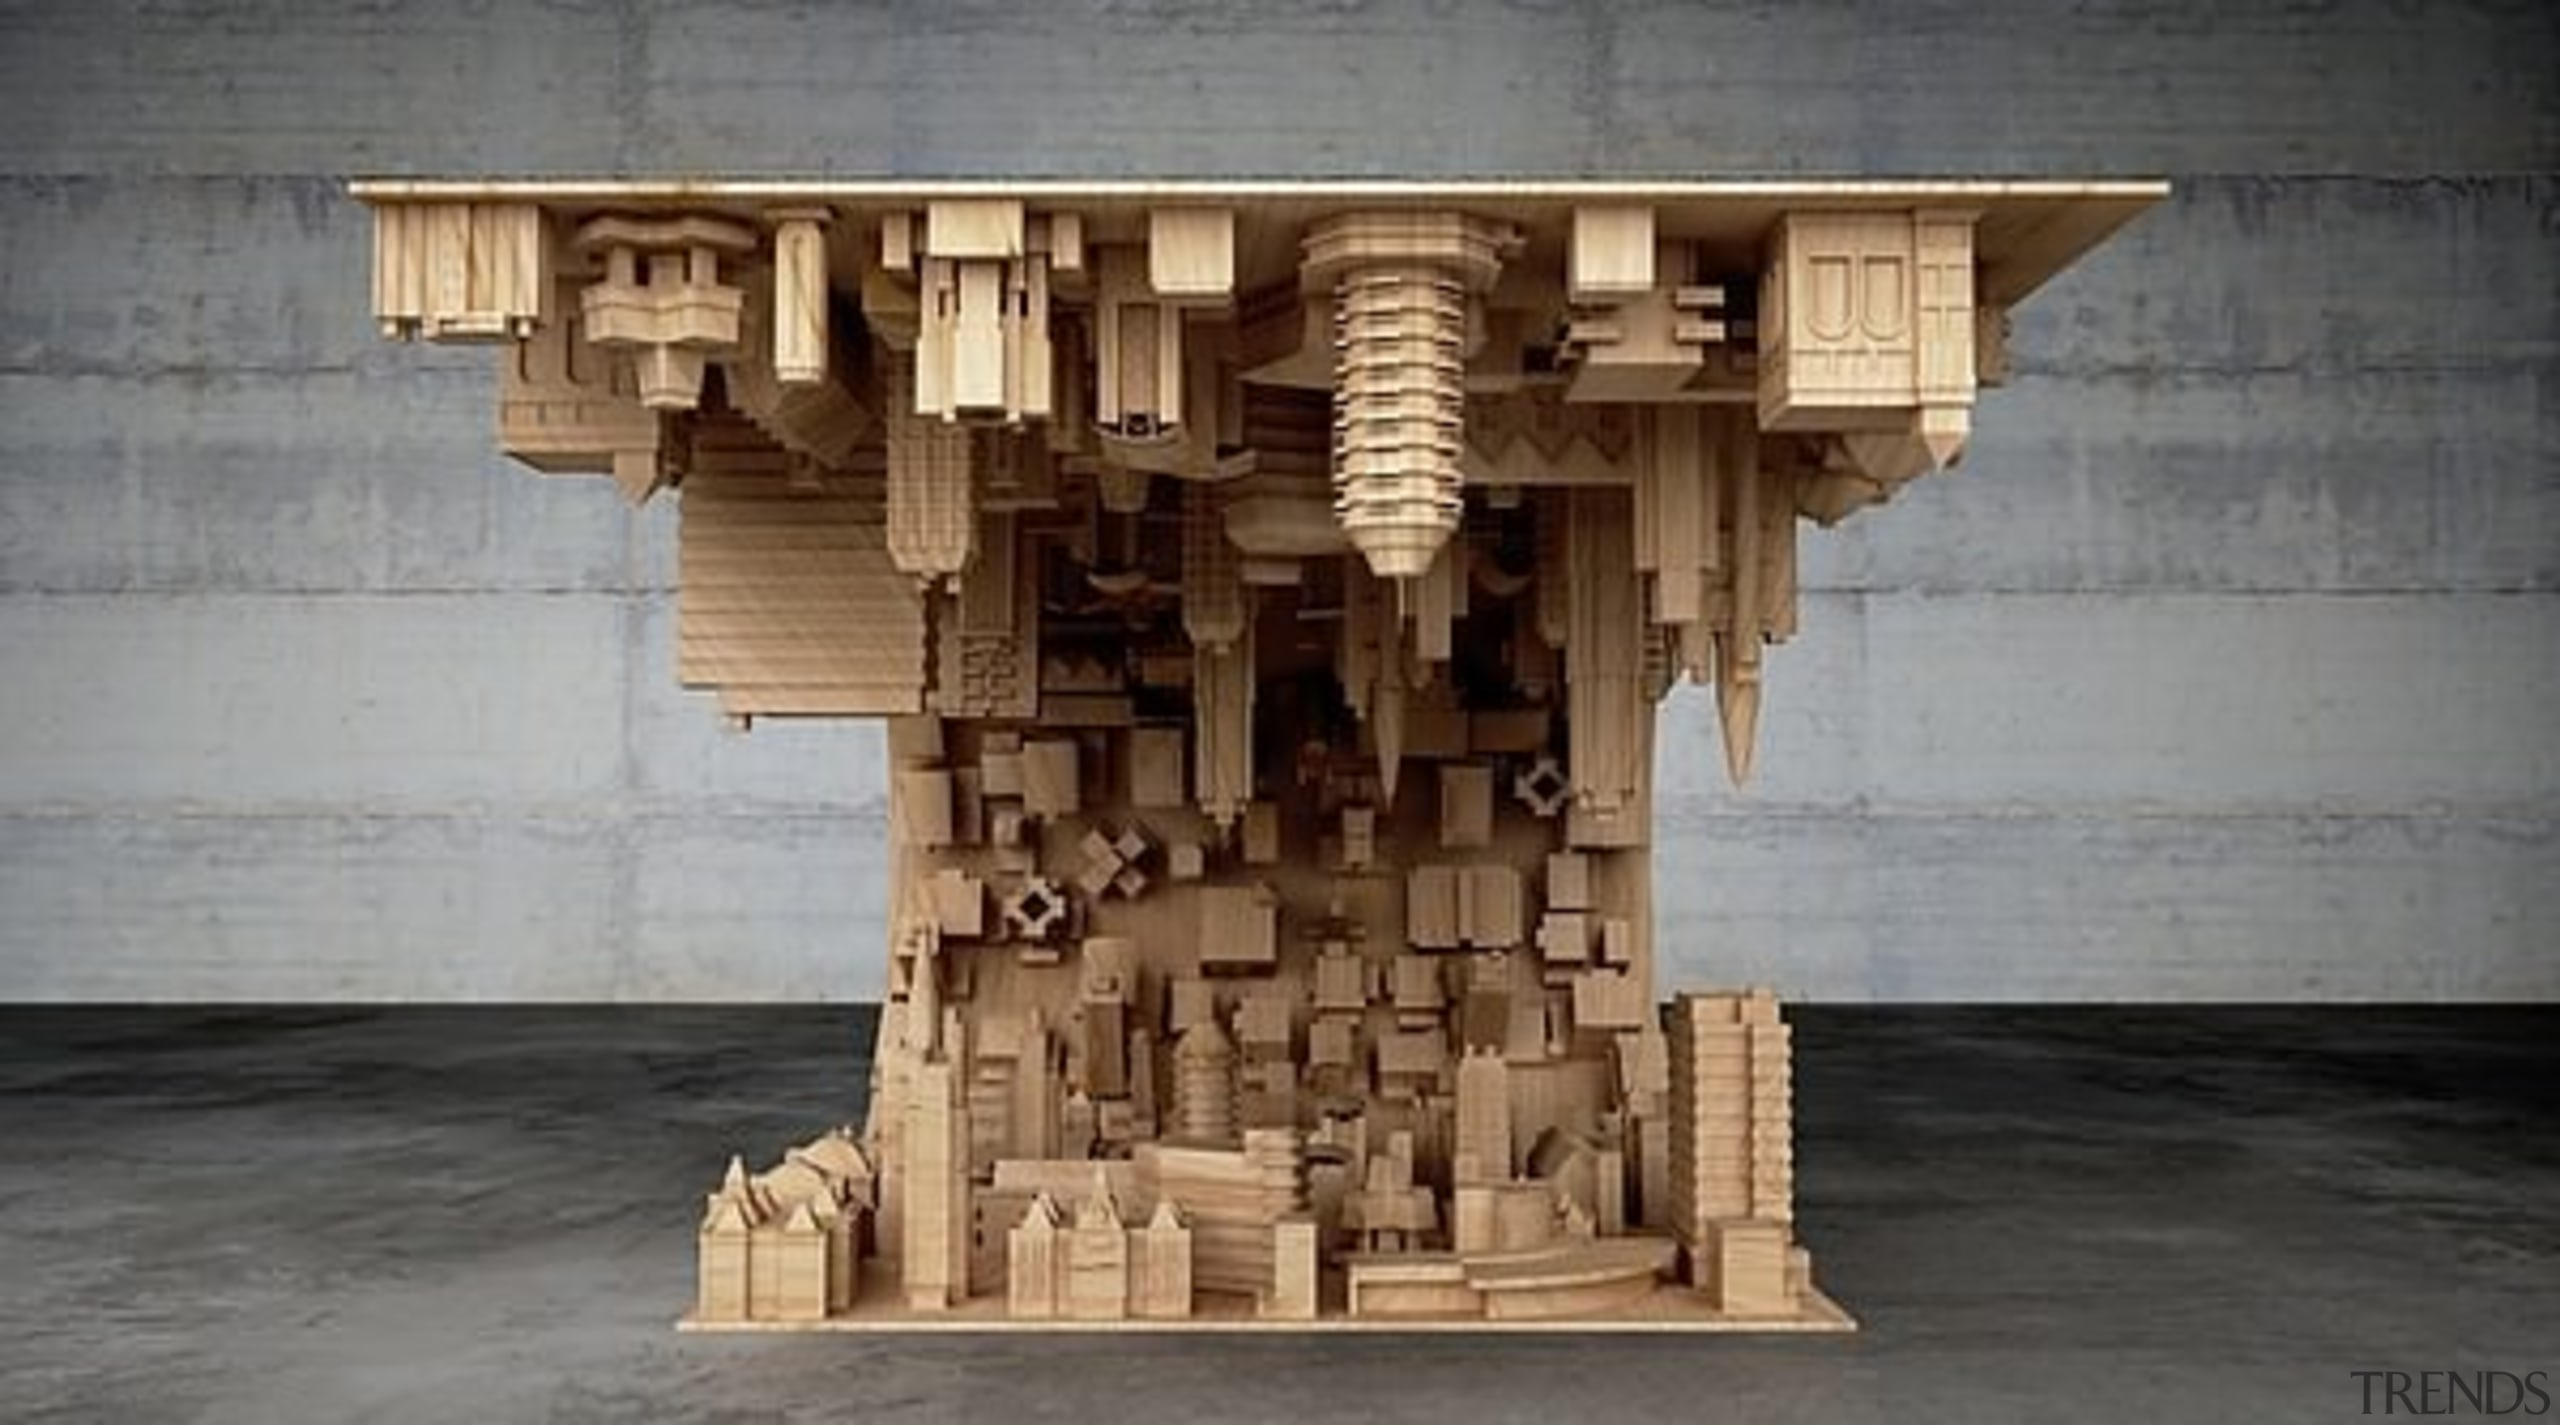 The wave city coffee table - The wave ancient history, archaeological site, carving, column, sculpture, structure, temple, tourist attraction, wood, gray